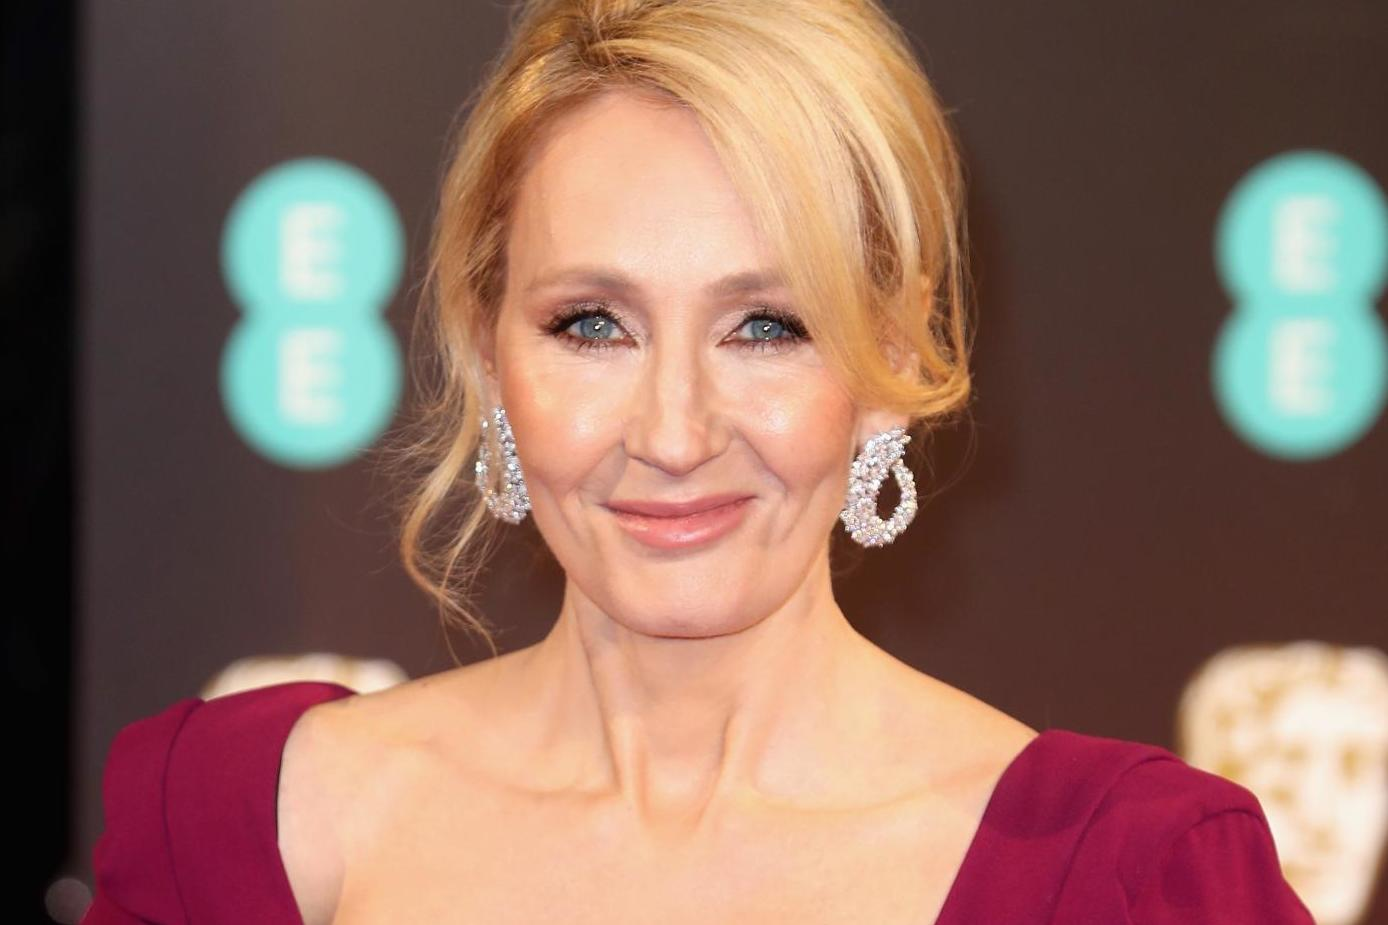 JK Rowling sues former personal assistant for £24,000 over